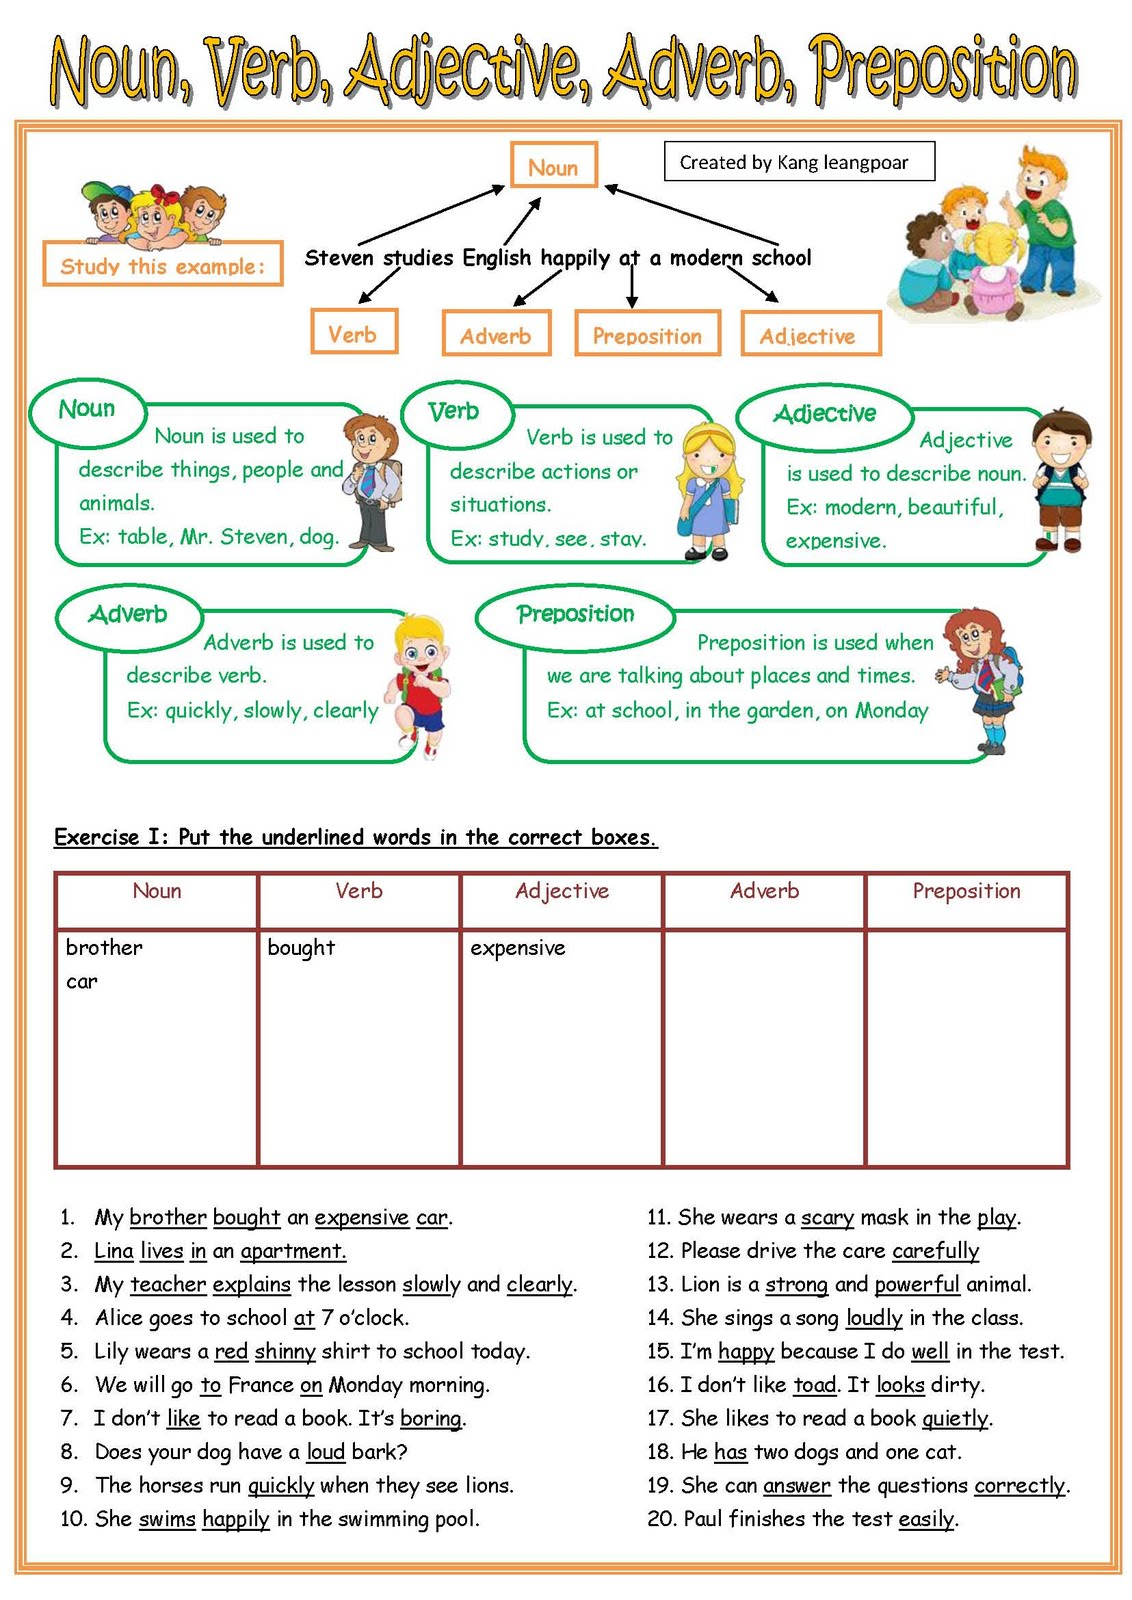 Noun Adverb And Adjective Clauses Worksheets